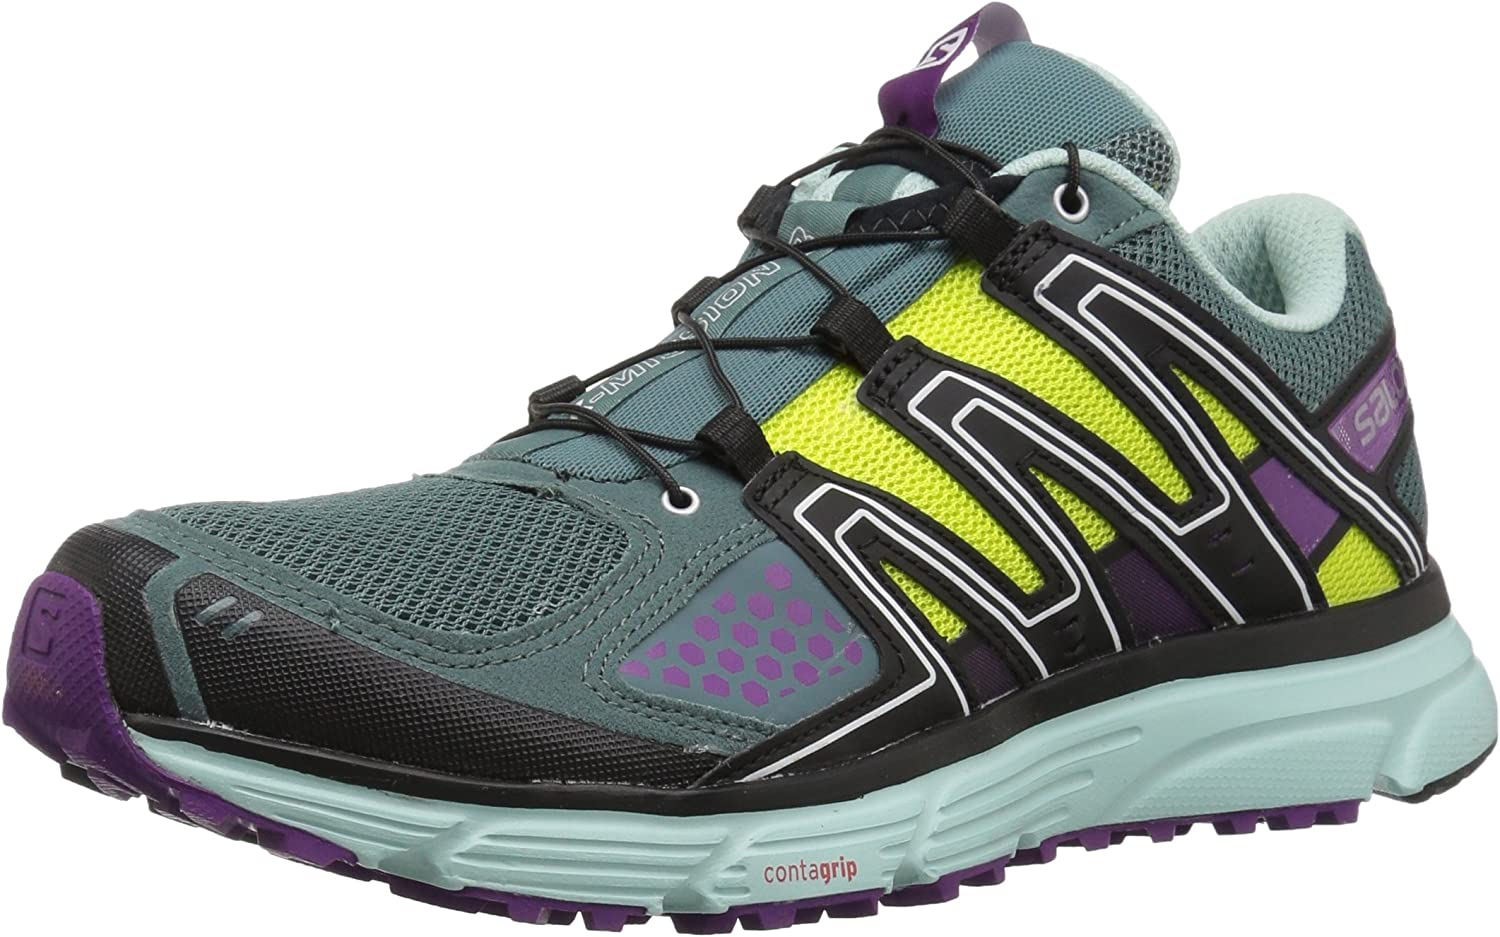 SALOMON Women's X-Mission 3 W Trail